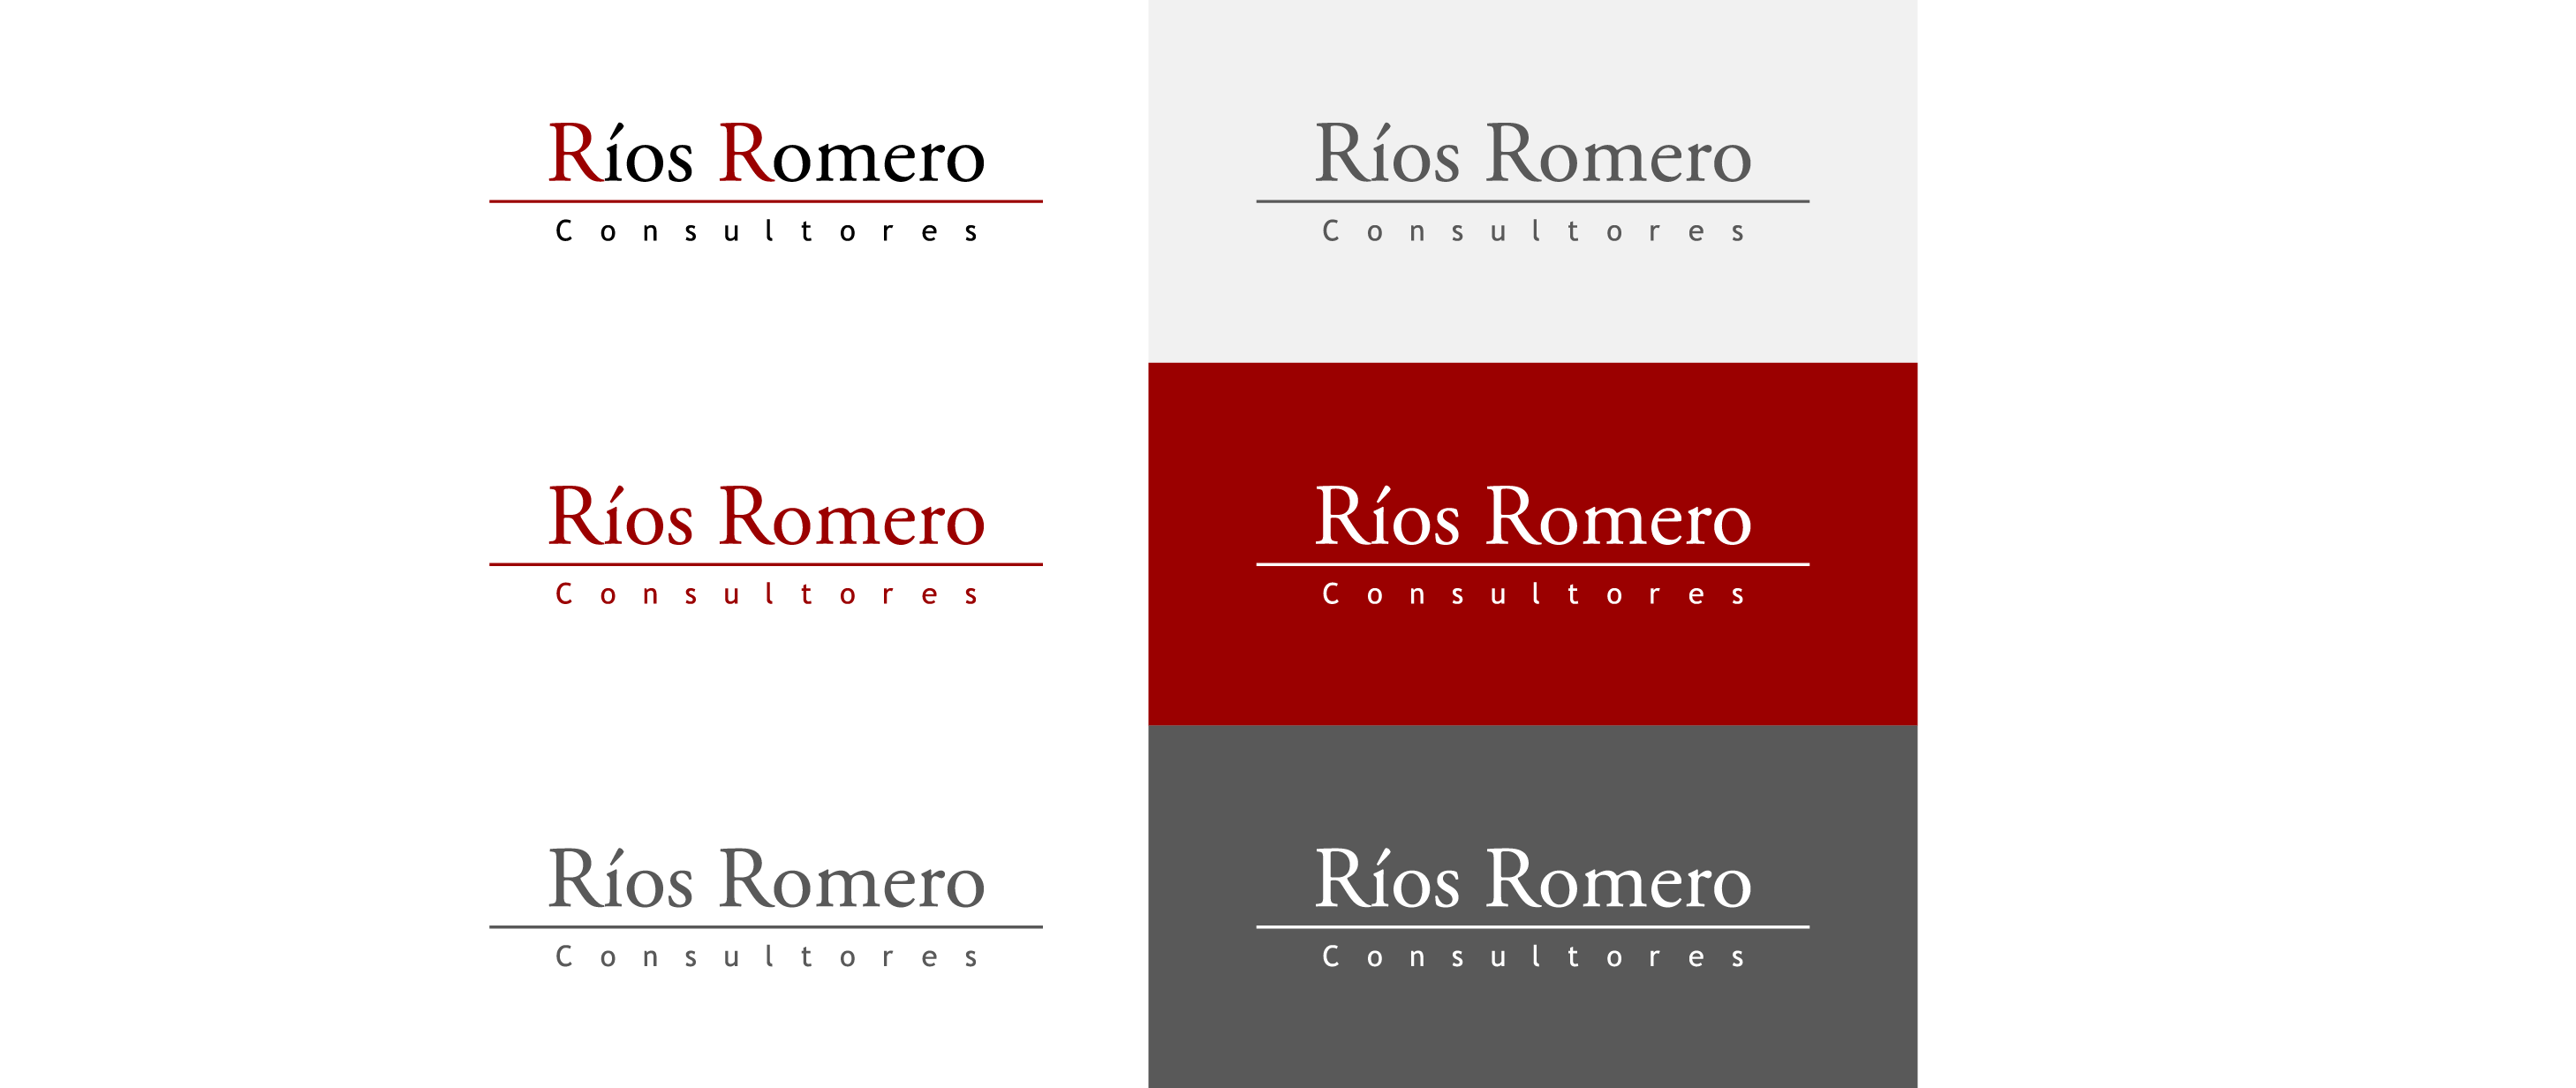 logotipo rrc en distintos colores